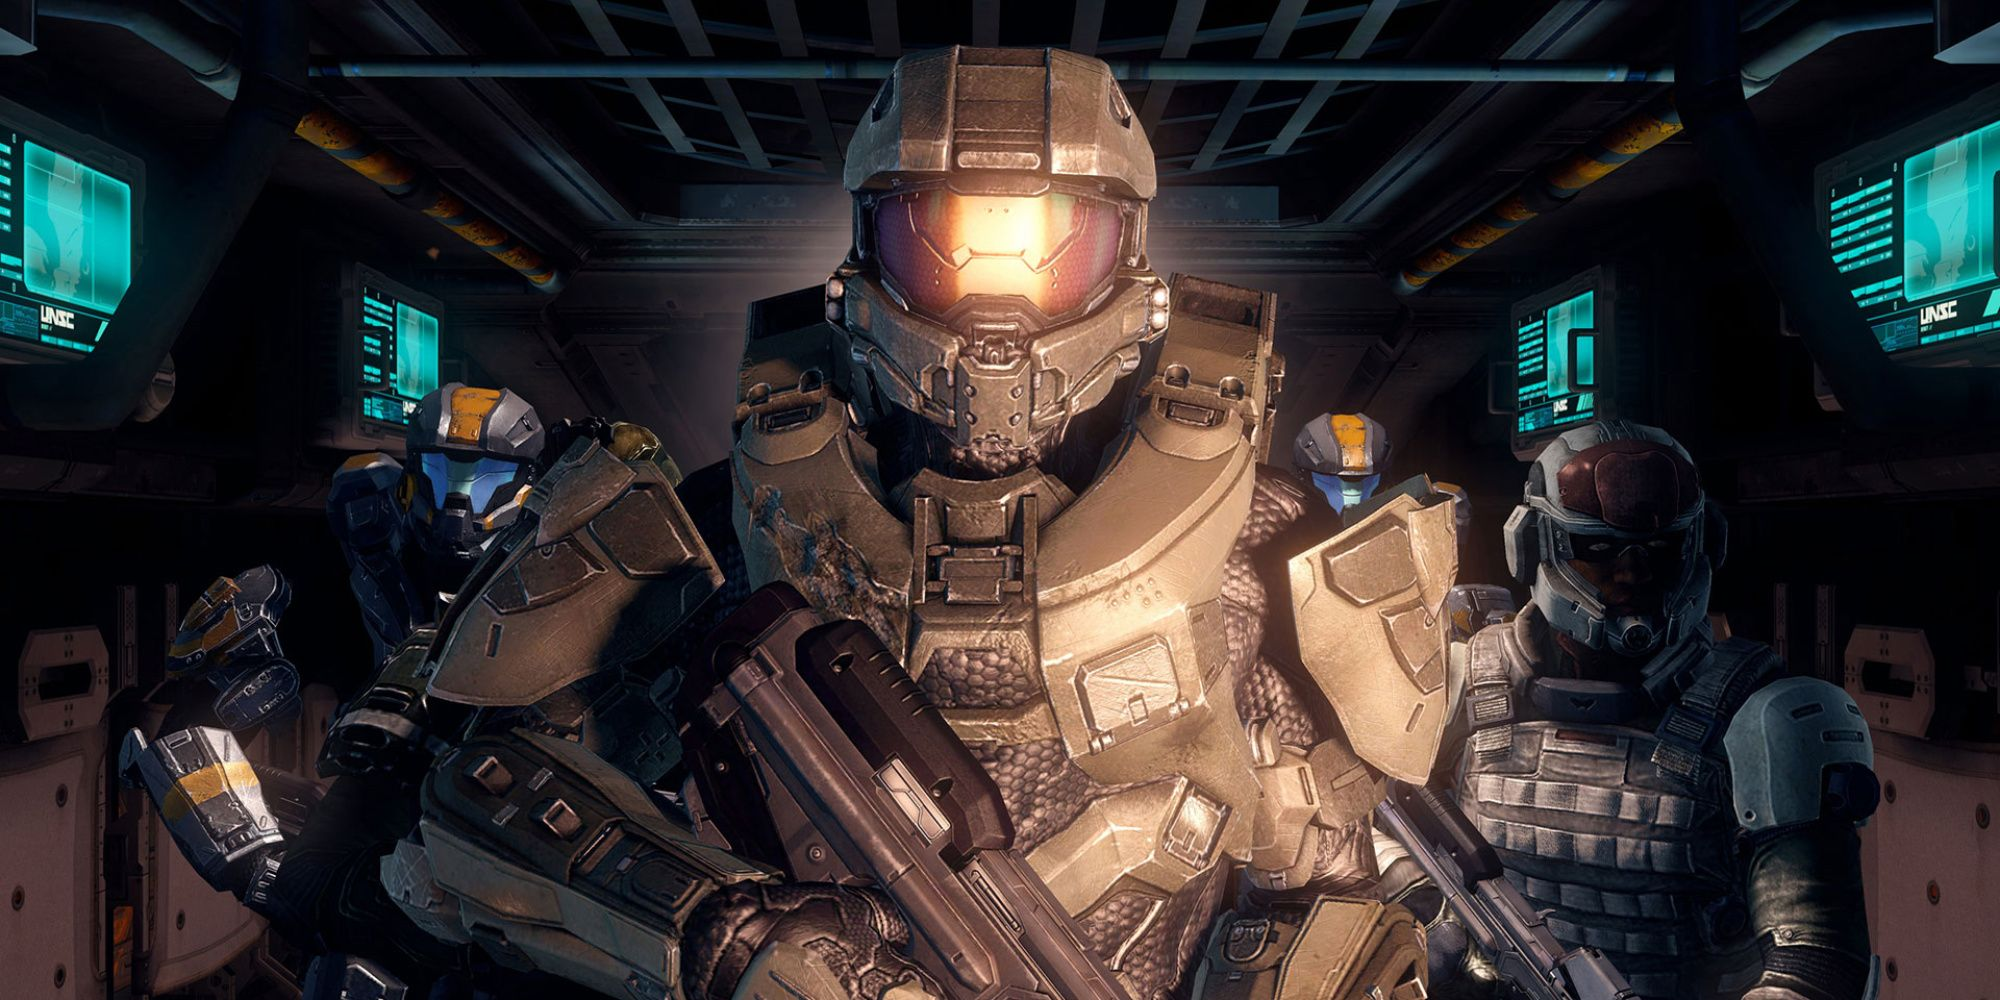 Showtime's Halo Series Casts Pablo Schreiber in Lead Role